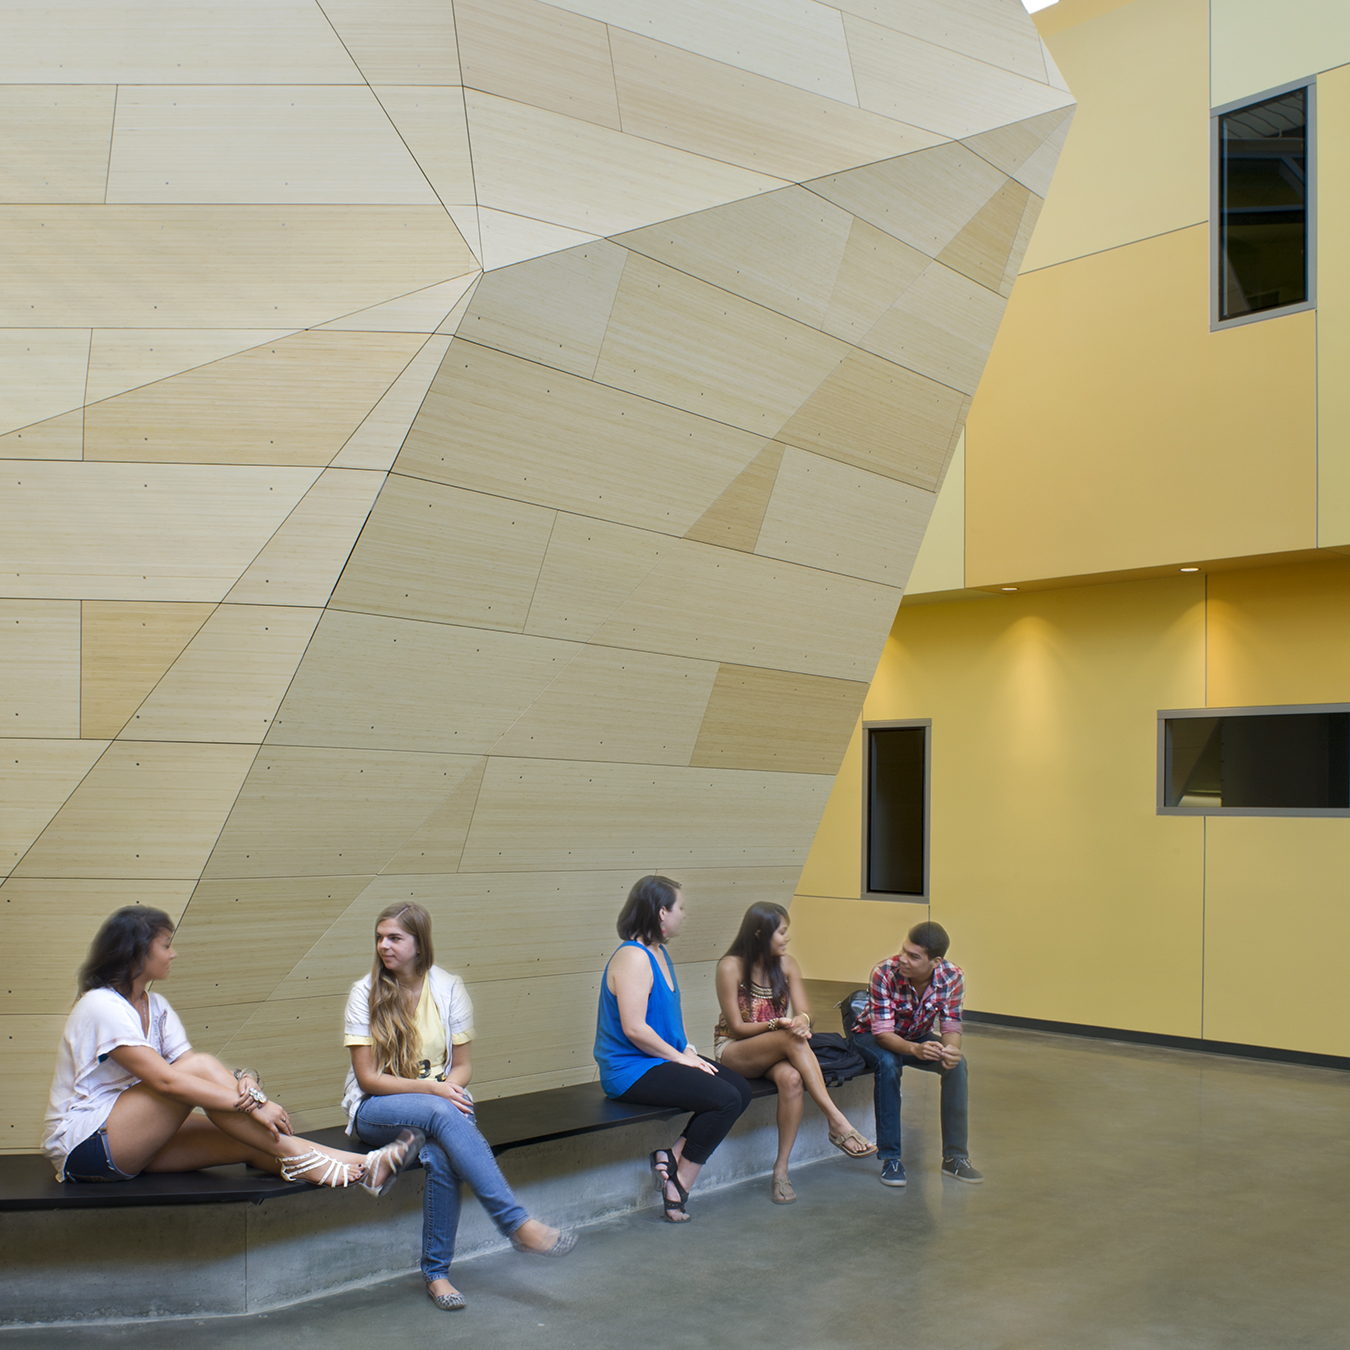 UC Merced Social Sciences and Management Building with Students